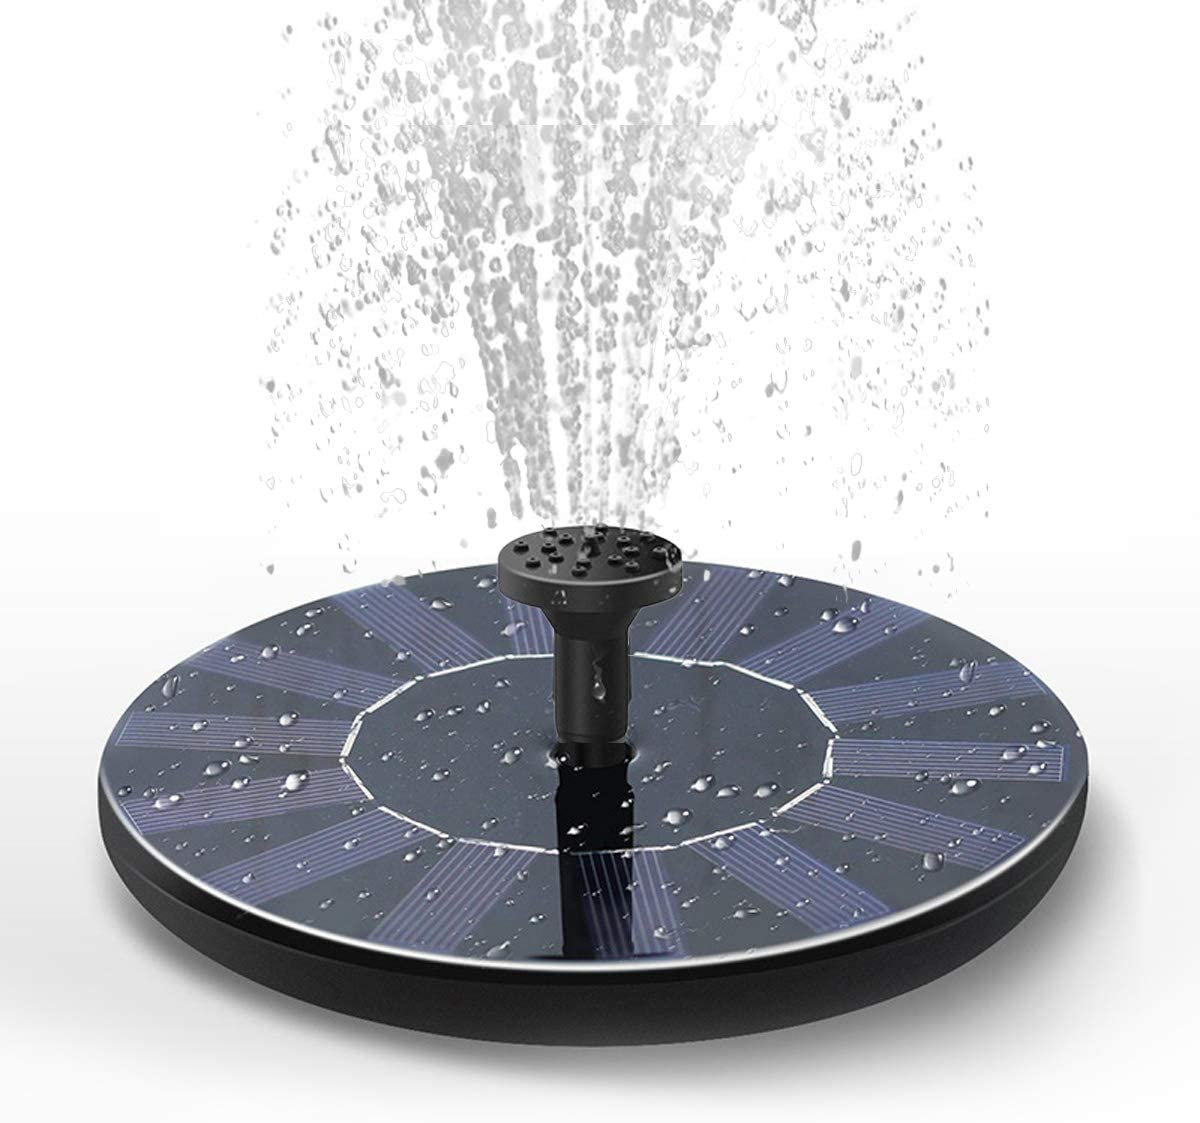 DDcafor Solar Fountain Water Pump for Bird Bath, New Upgraded Mini Solar Powered Fountain Pump 1.5W Free Standing Solar Panel Kit Water Fountain for Garden, Pond, Pool, and Outdoor